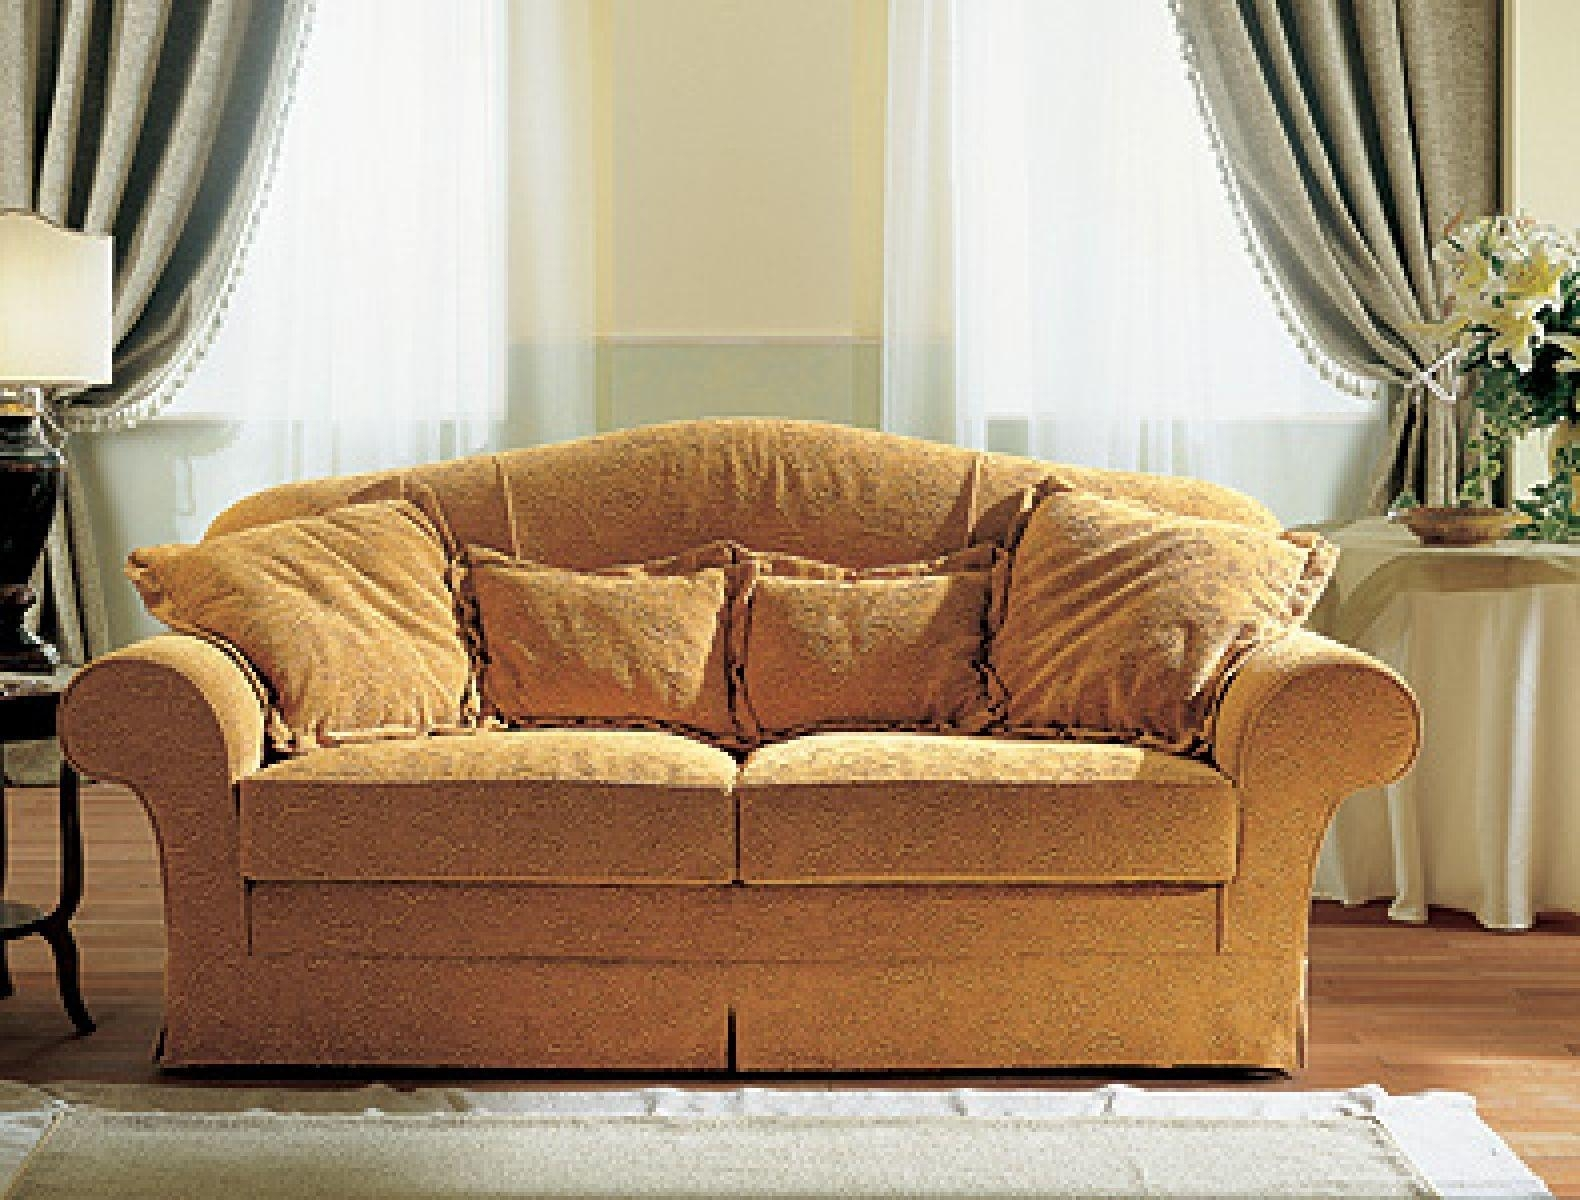 Traditional Sofa / Fabric / 2 Seater / White – Jois – Doimo Salotti Within Traditional Fabric Sofas (View 7 of 20)